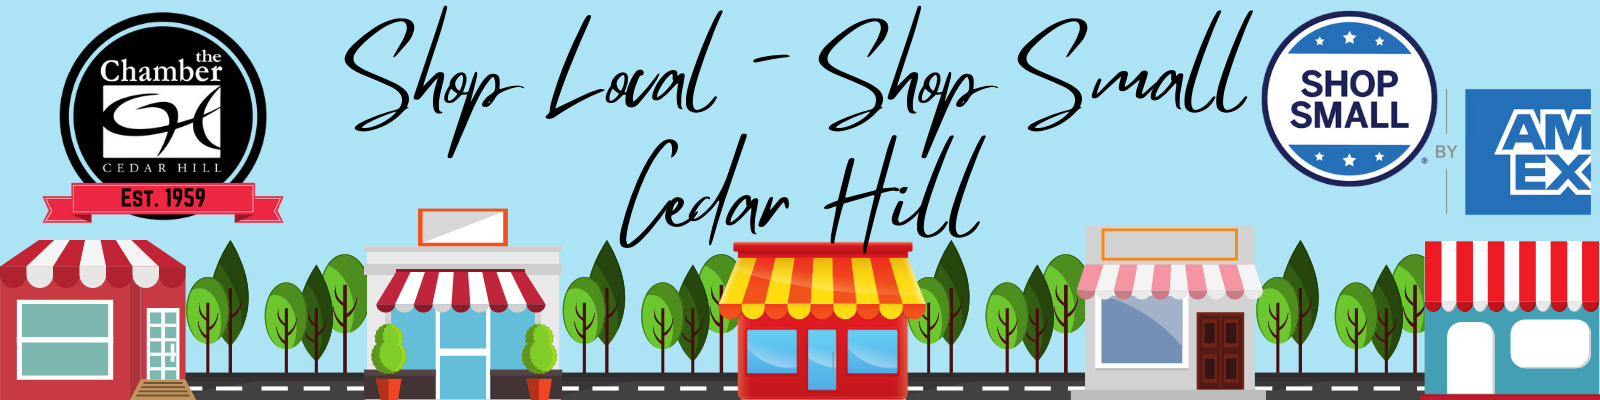 Shop-Small-Form-Banner.png